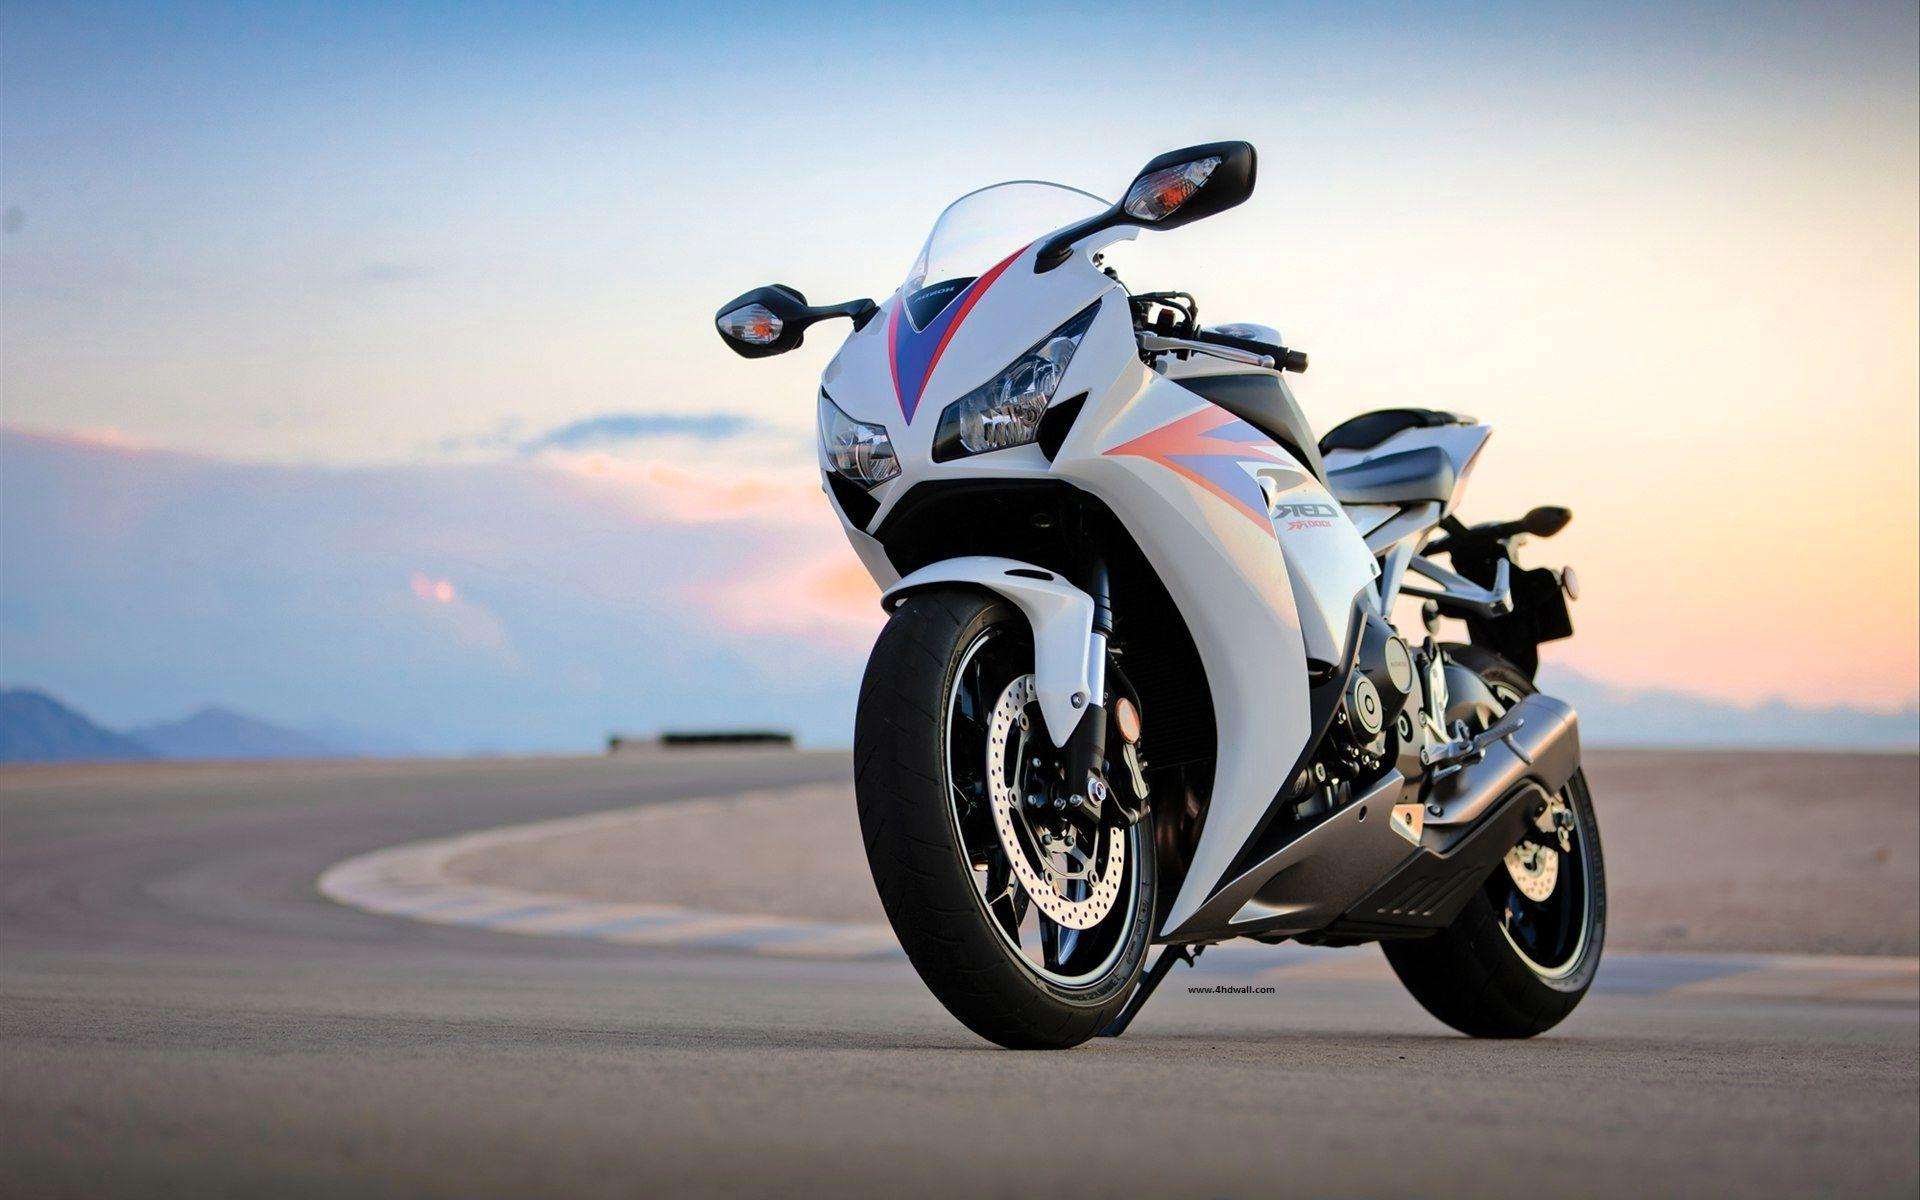 Superbike Hd Wallpaper Full Screen: Bullet Bike Wallpapers